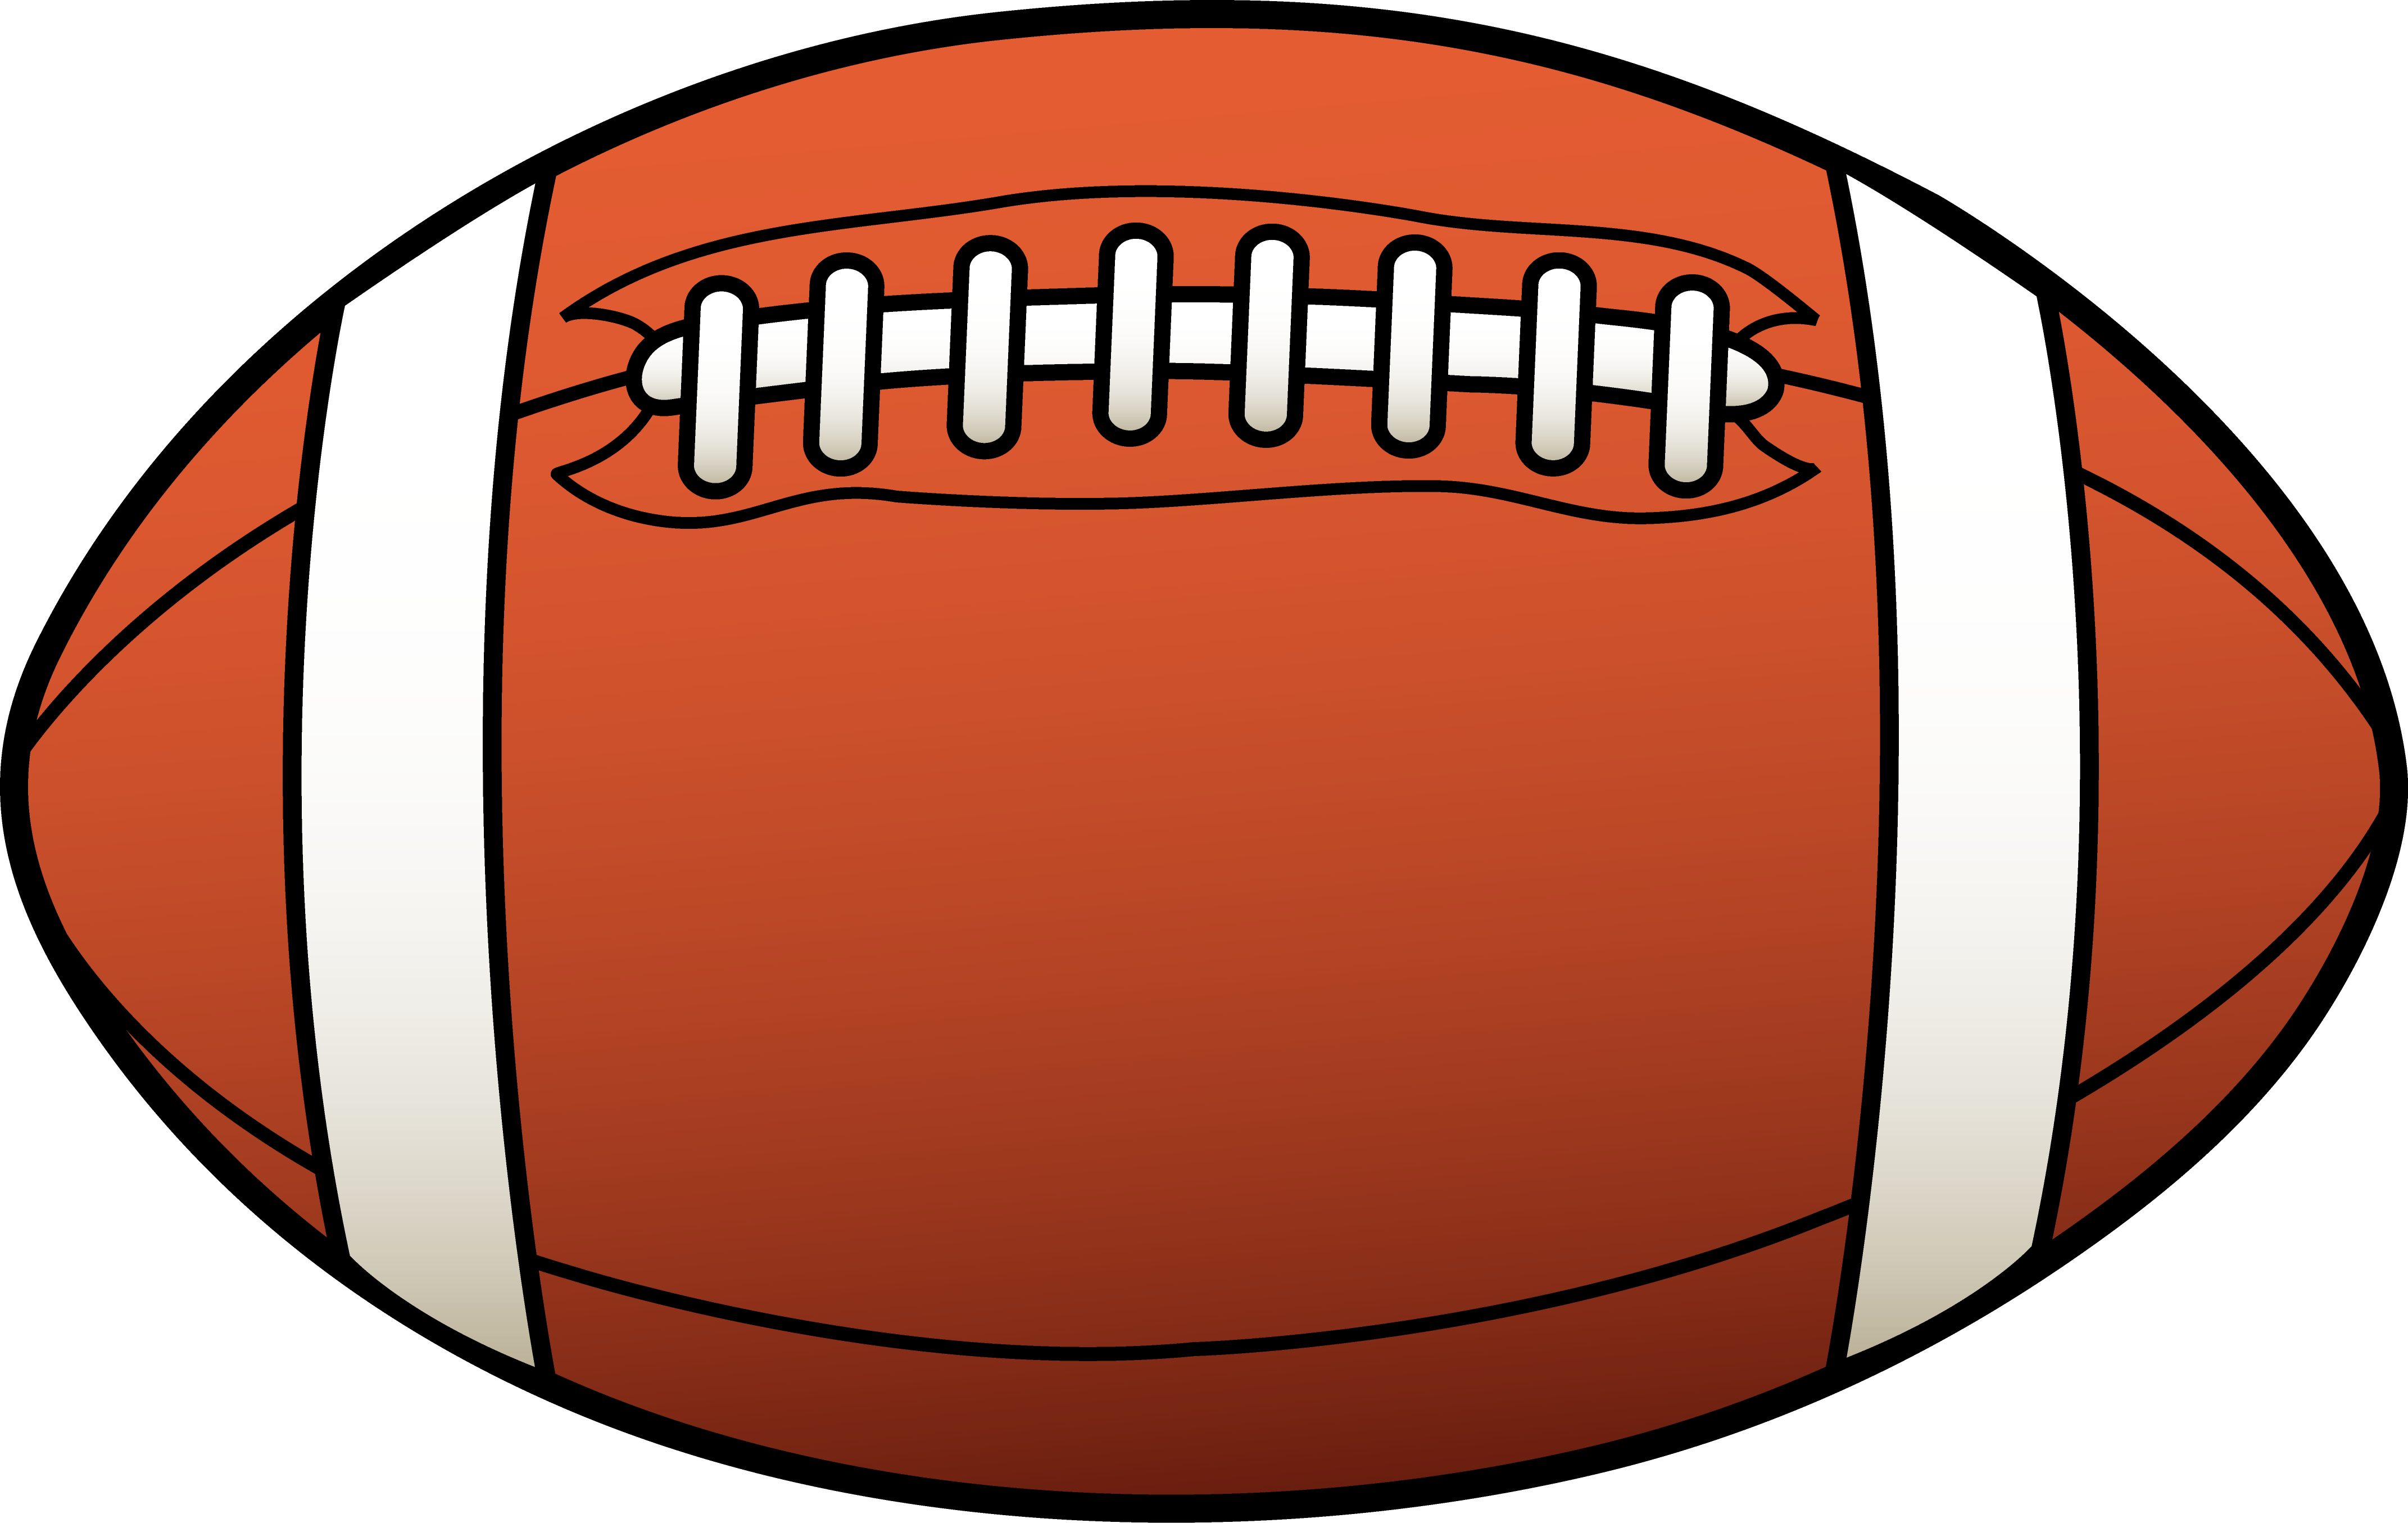 Free Football Clip Art Pictures